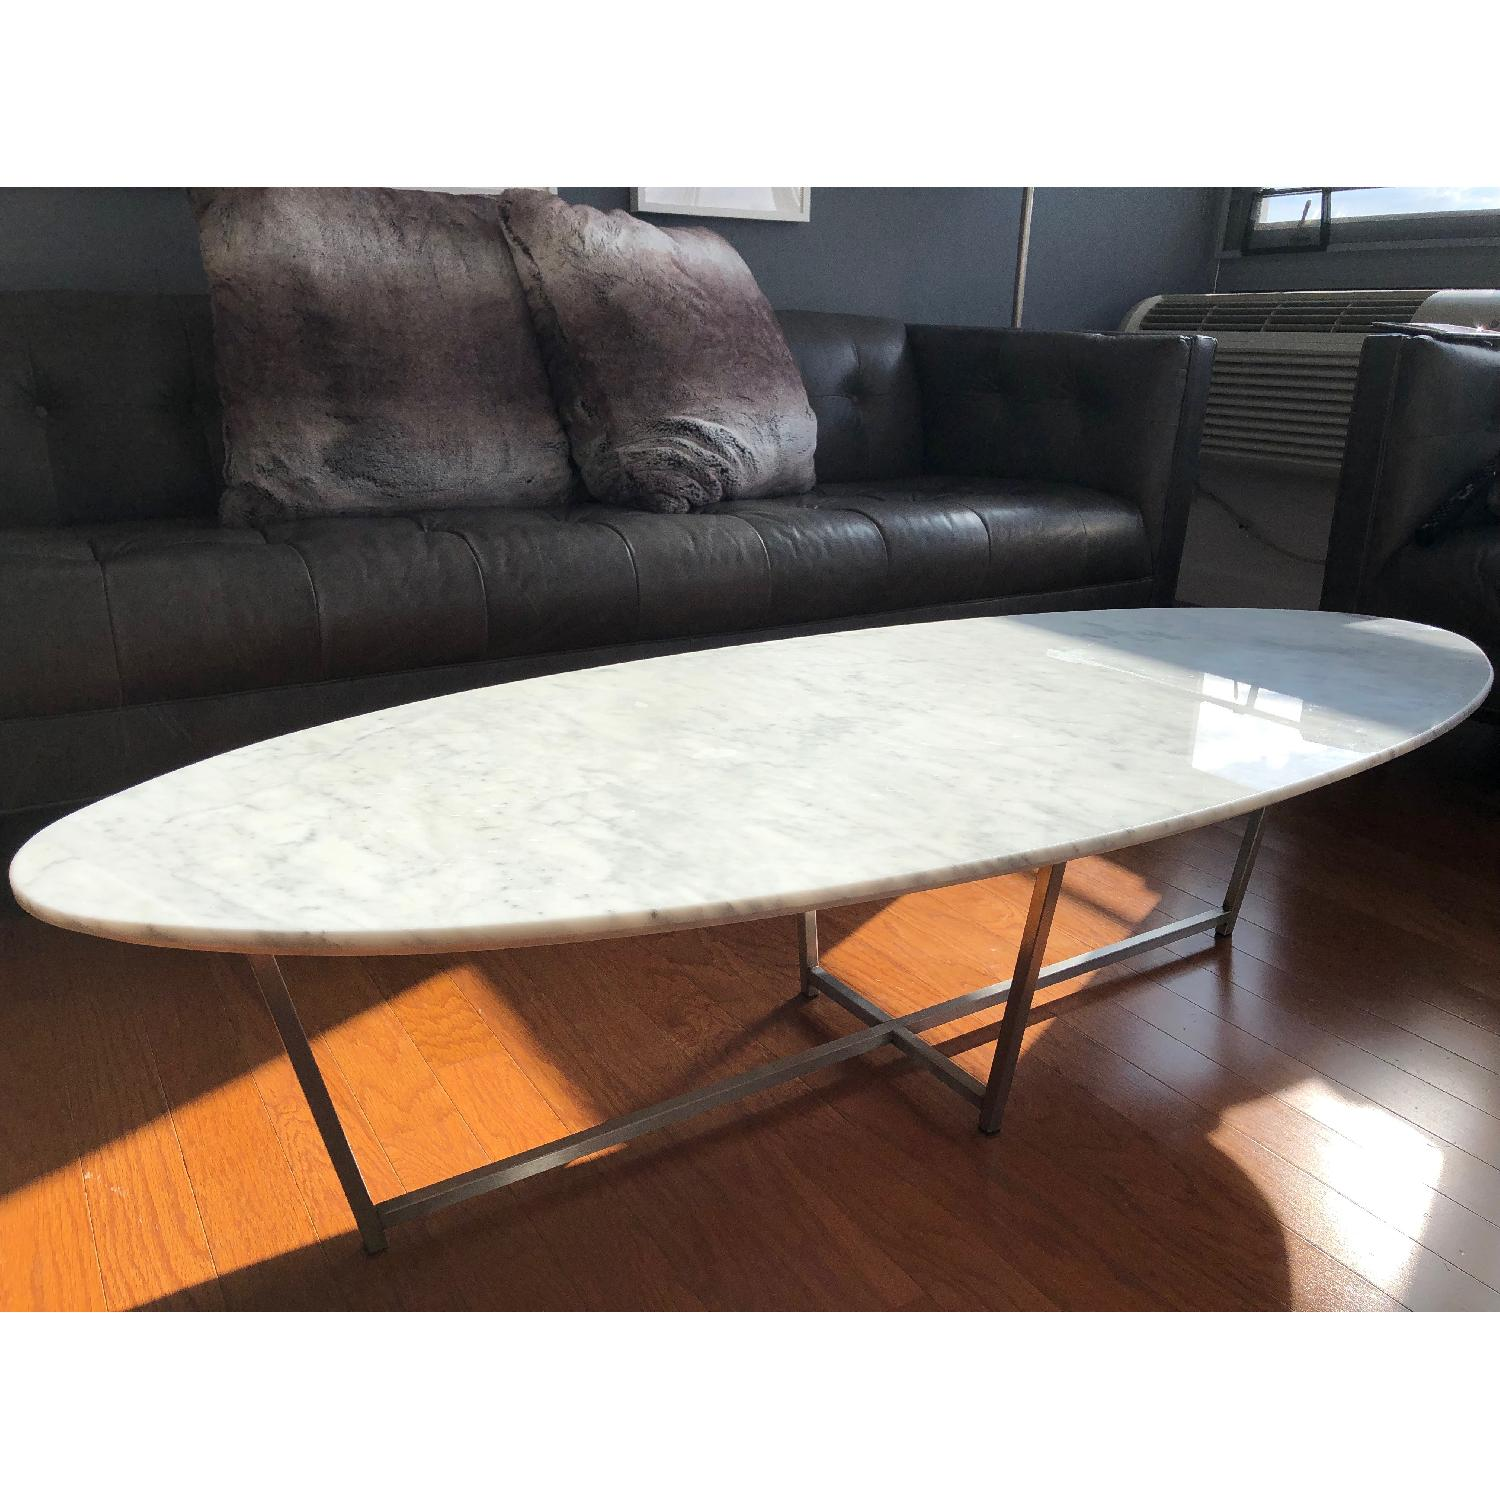 Room & Board Oval Coffee Table in Stainless/Venatian Marble-1